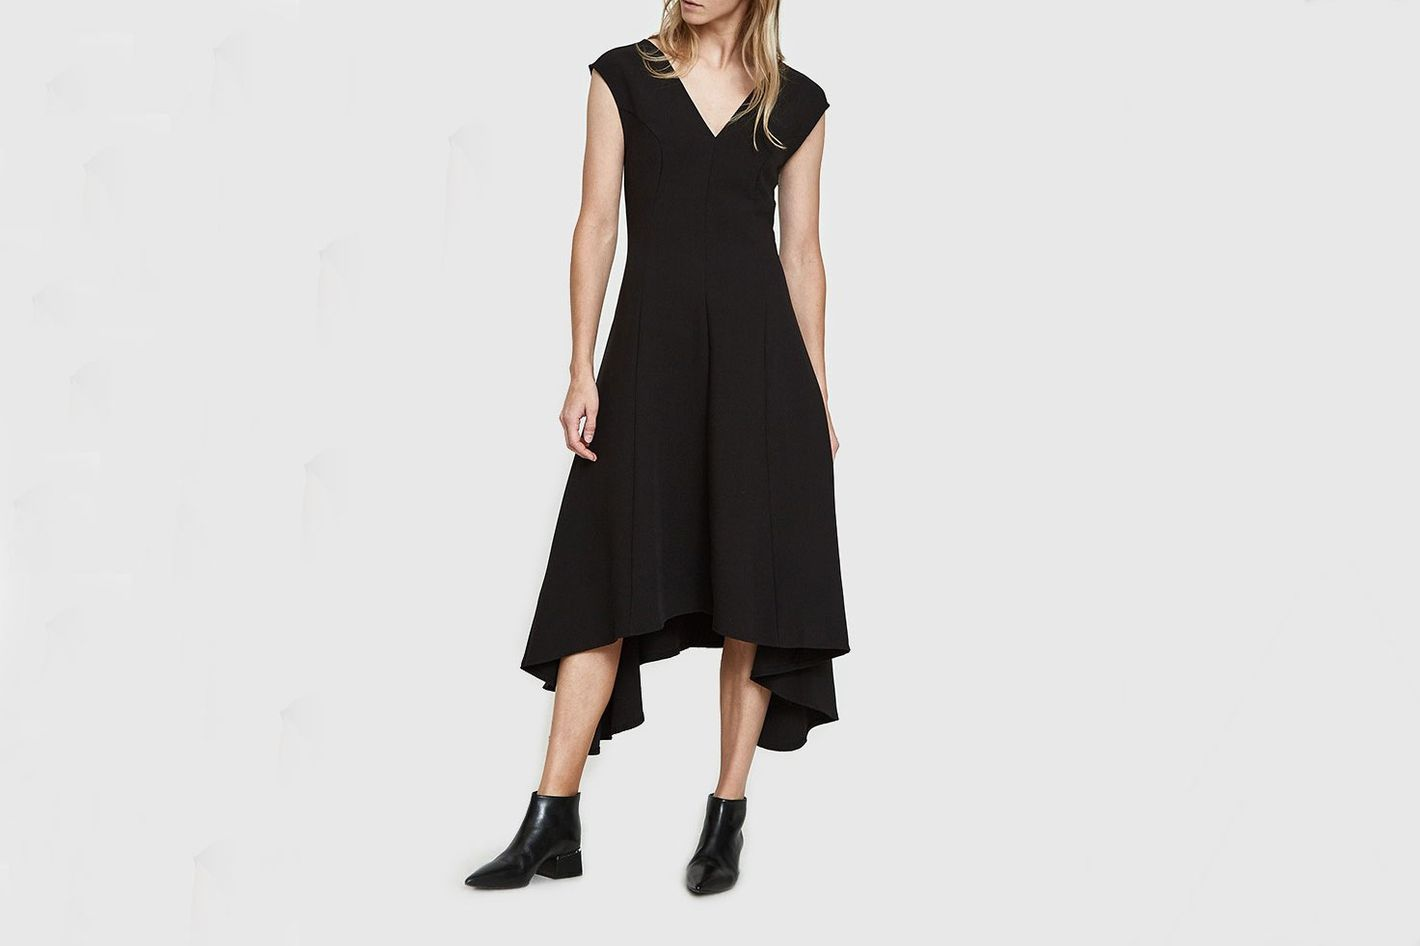 Stelen Farina Dress in Black